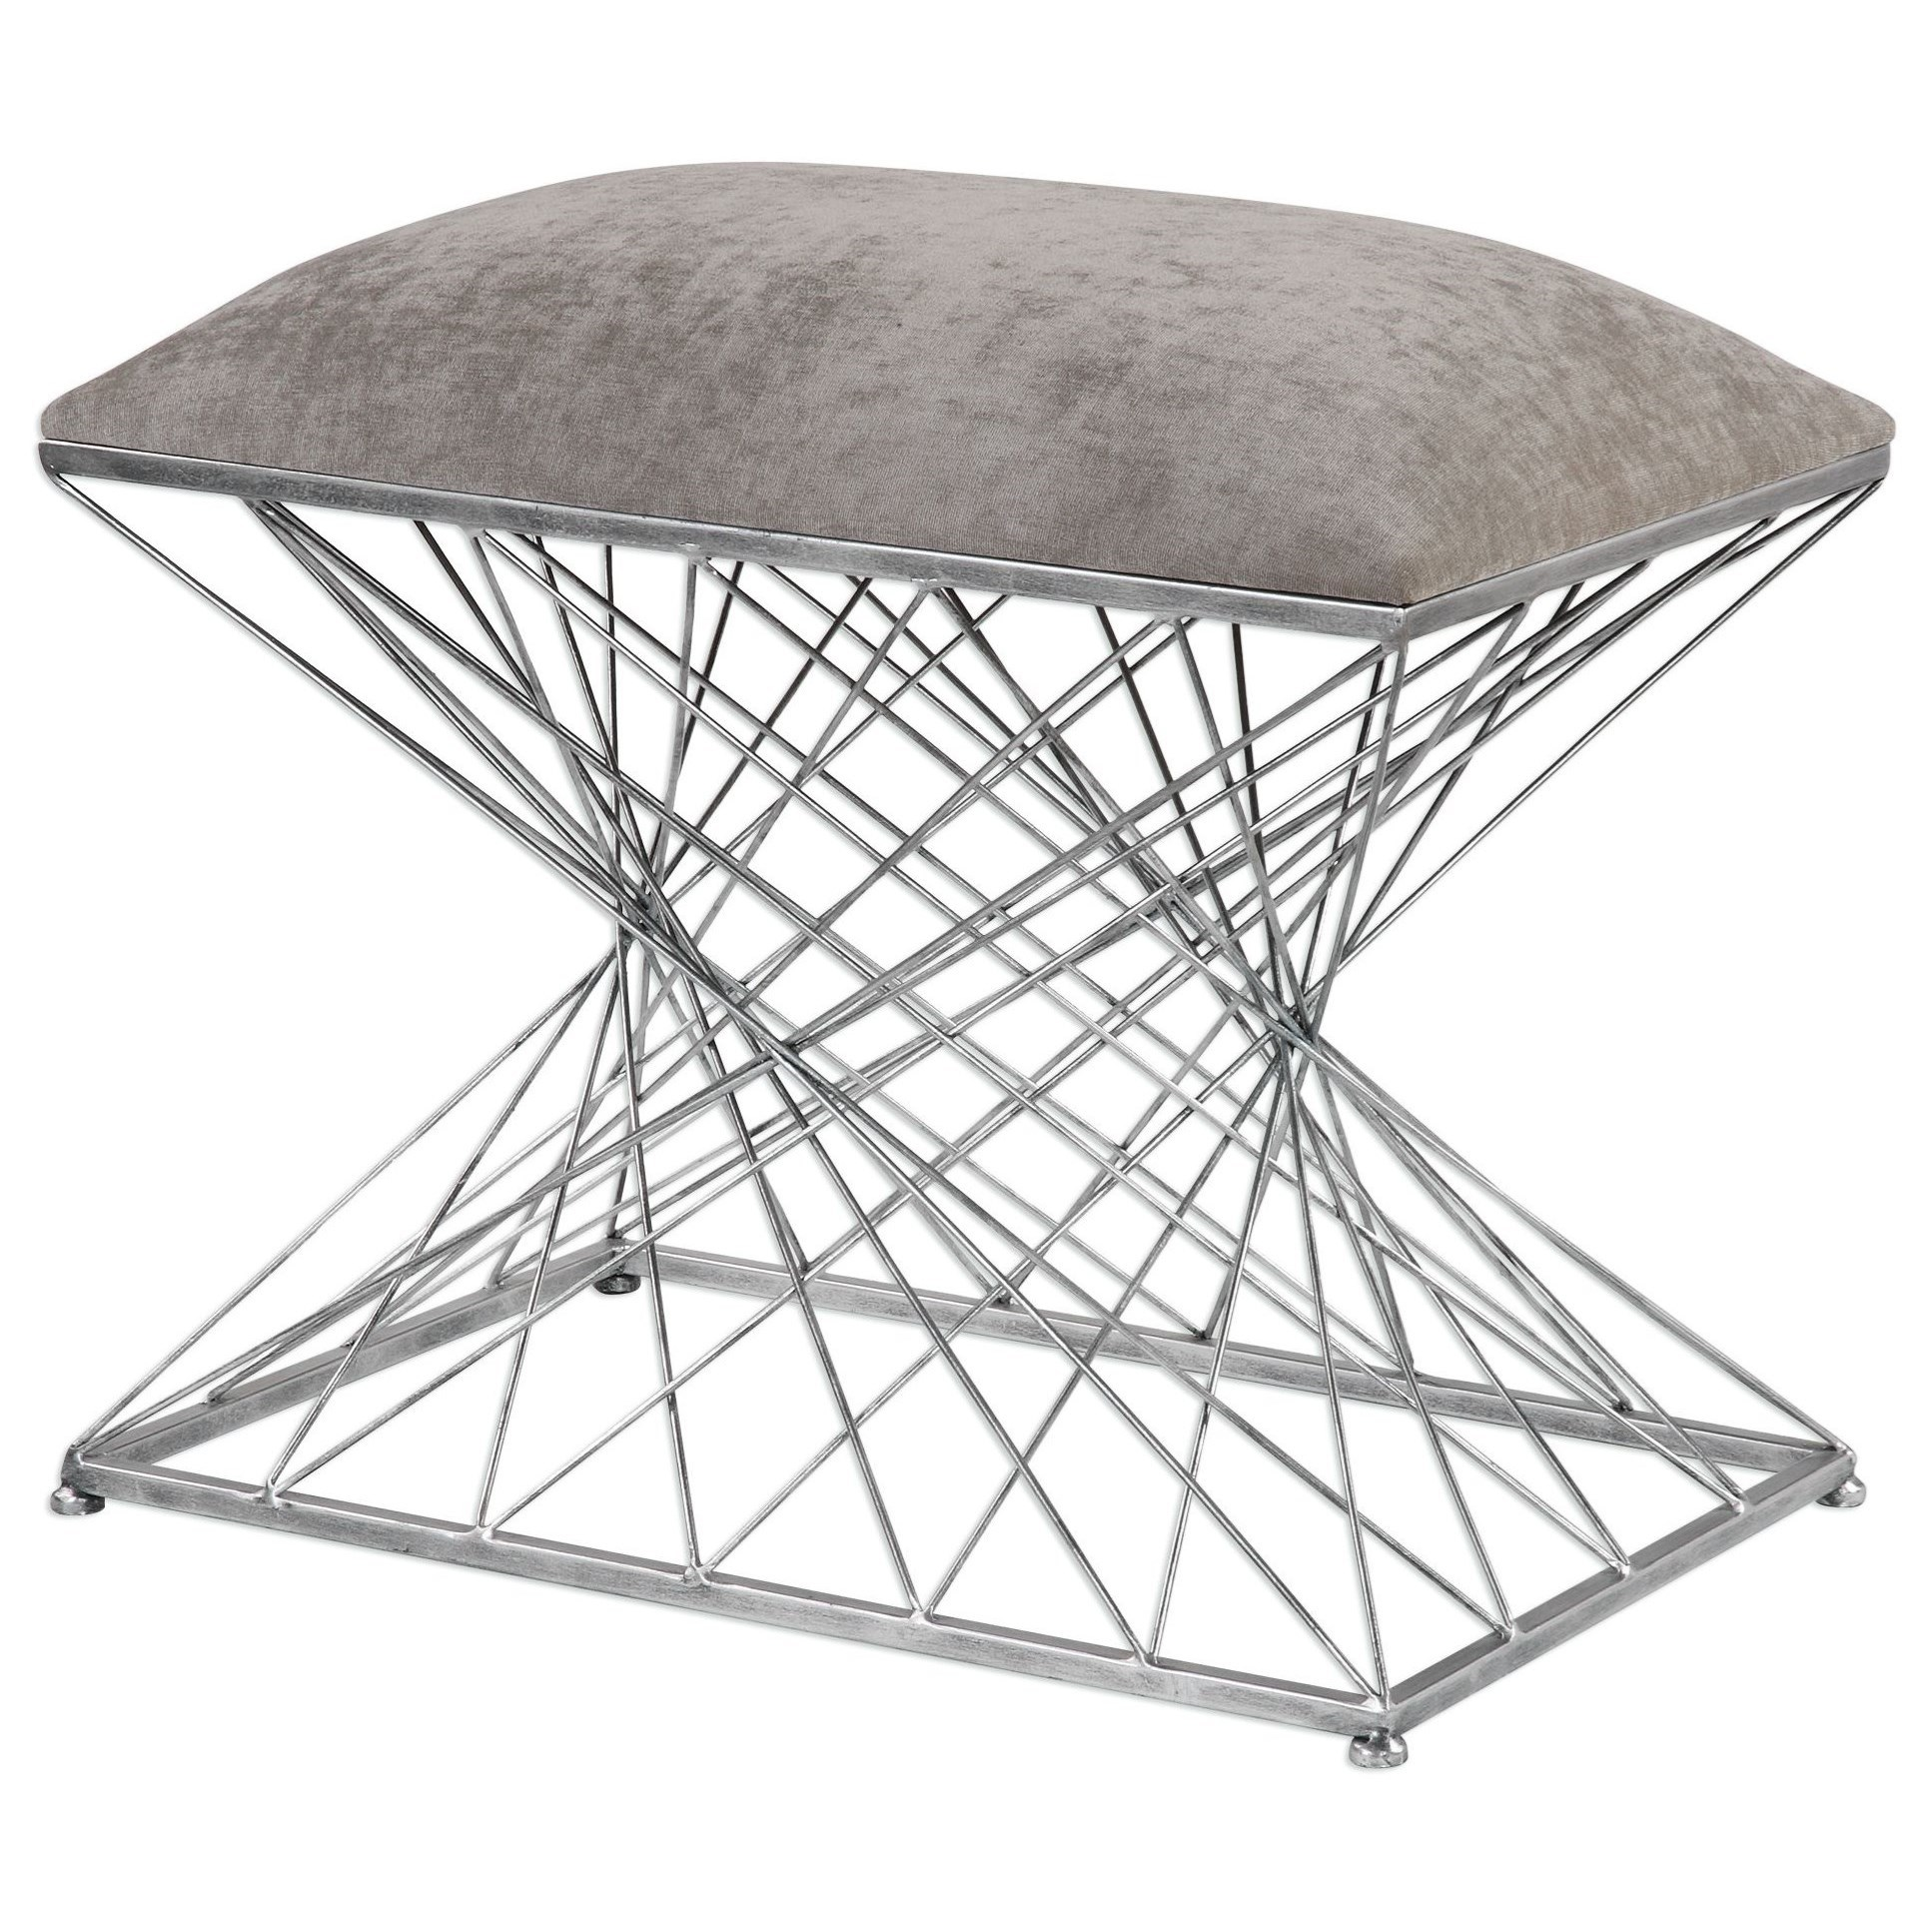 Accent Furniture - Benches Zelia Silver Accent Stool by Uttermost at Furniture Superstore - Rochester, MN